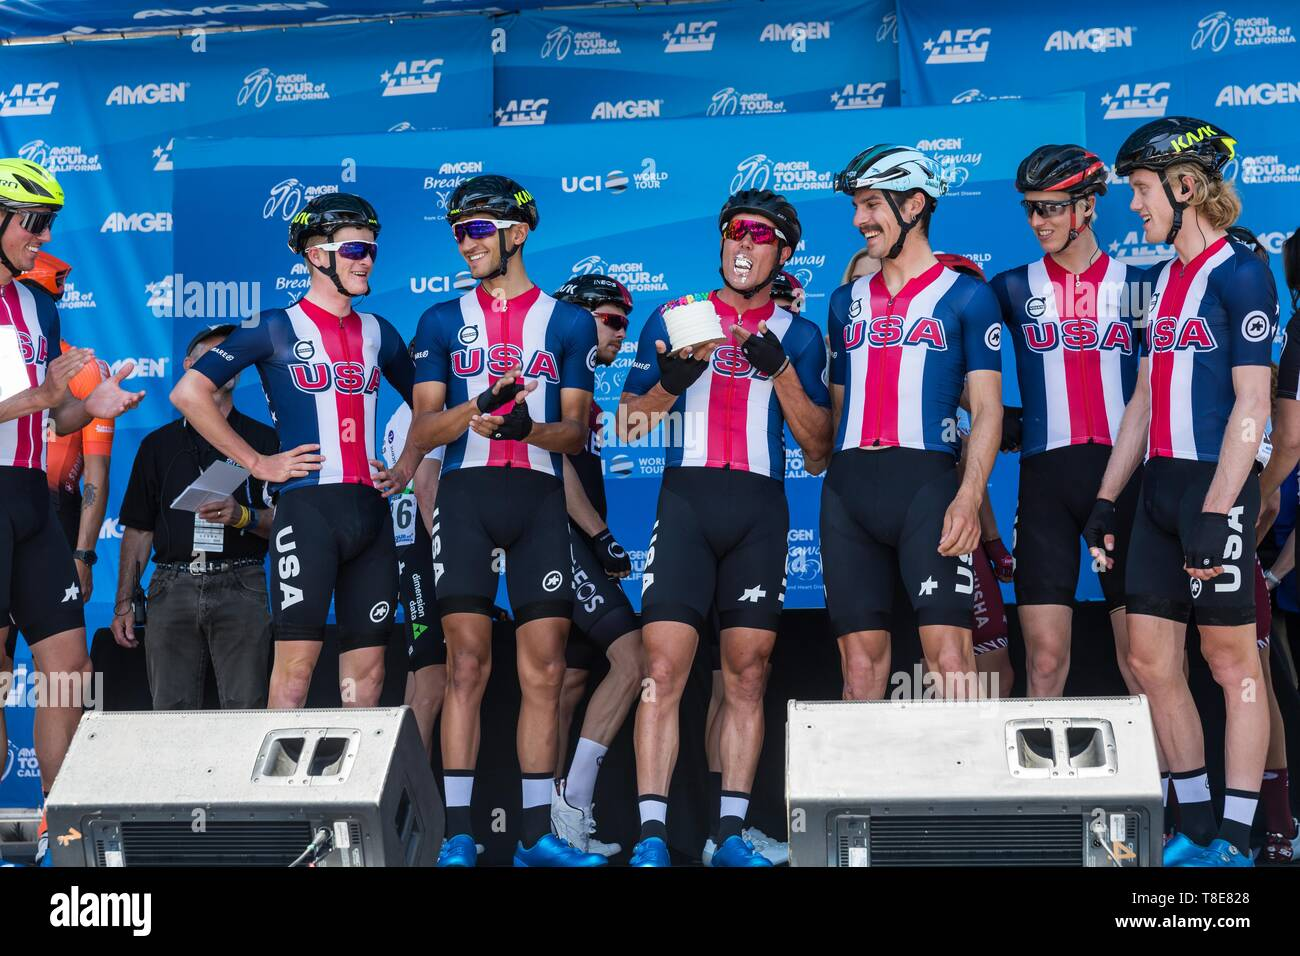 Sacramento, California, USA. 12th May, 2019. TRAVIS MCCABE takes a bite of his birthday cake as Team USA is introduced prior to Stage 1 of the 2019 Amgen Tour of California at California's State Capitol city of Sacramento on Sunday afternoon. Stage 1 begins and ends in Sacramento, where the American and Sacramento Rivers meet before heading west. This is the race's 10th year in Sacramento.The 2019 Amgen Tour of California race will showcase scenic California roadways, coastlines and iconic settings, with more than 750 miles of racing throughout the seven-day event. The race will run north t - Stock Image